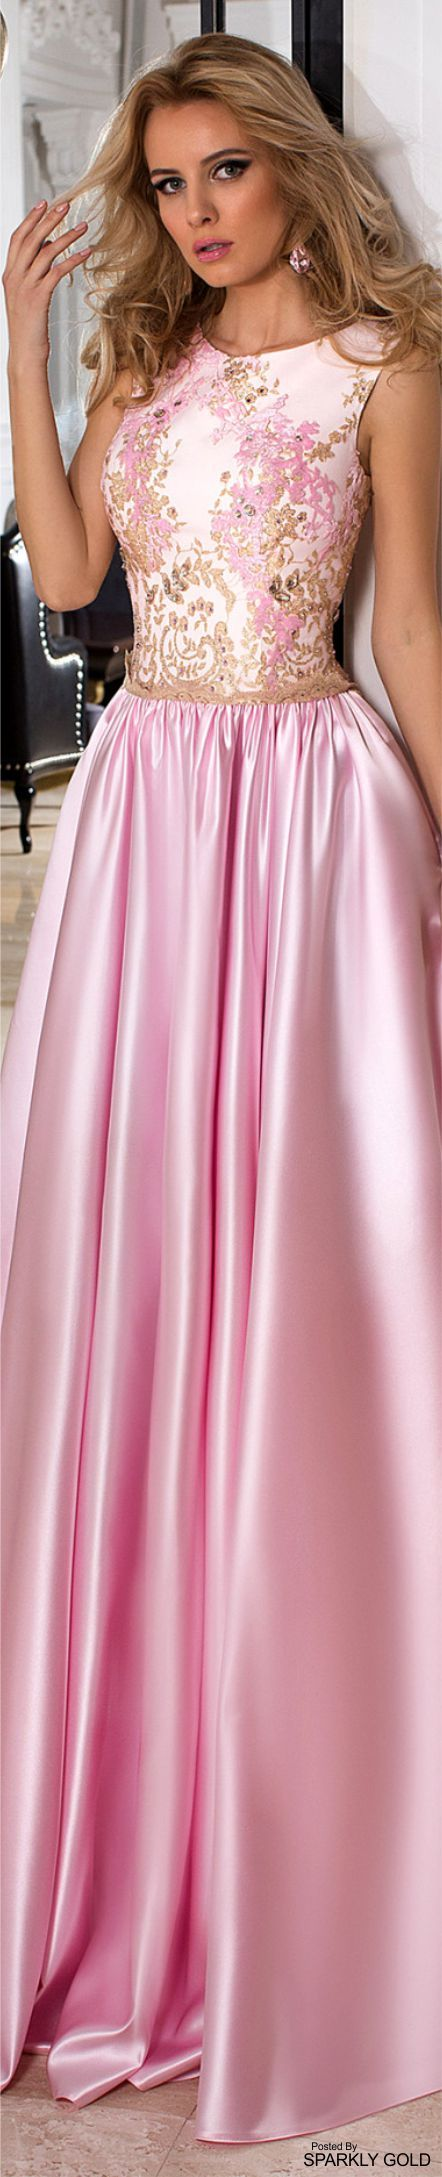 Pin de LUXURY SPARKLY GOLD en ♢✰ VIP❋GALA❋PINK ✰♢ | Pinterest ...